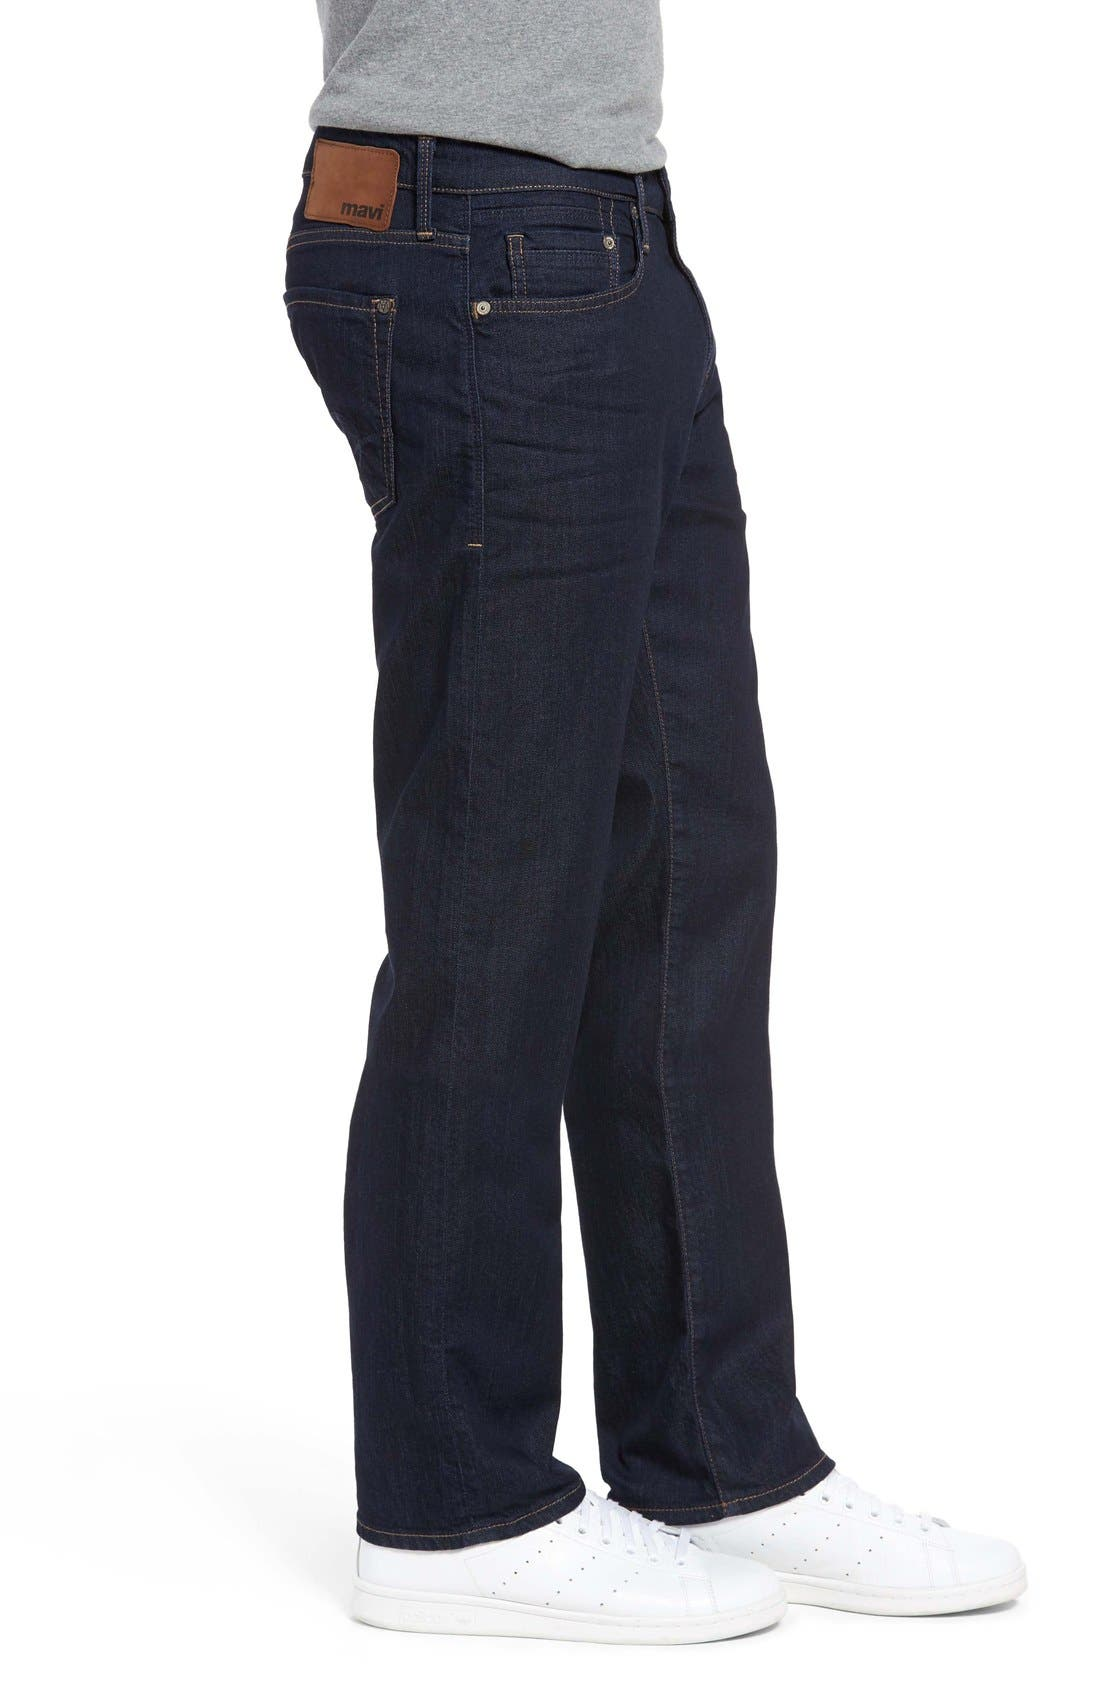 'Zach' Straight Leg Jeans,                             Alternate thumbnail 4, color,                             RINSE PORTLAND